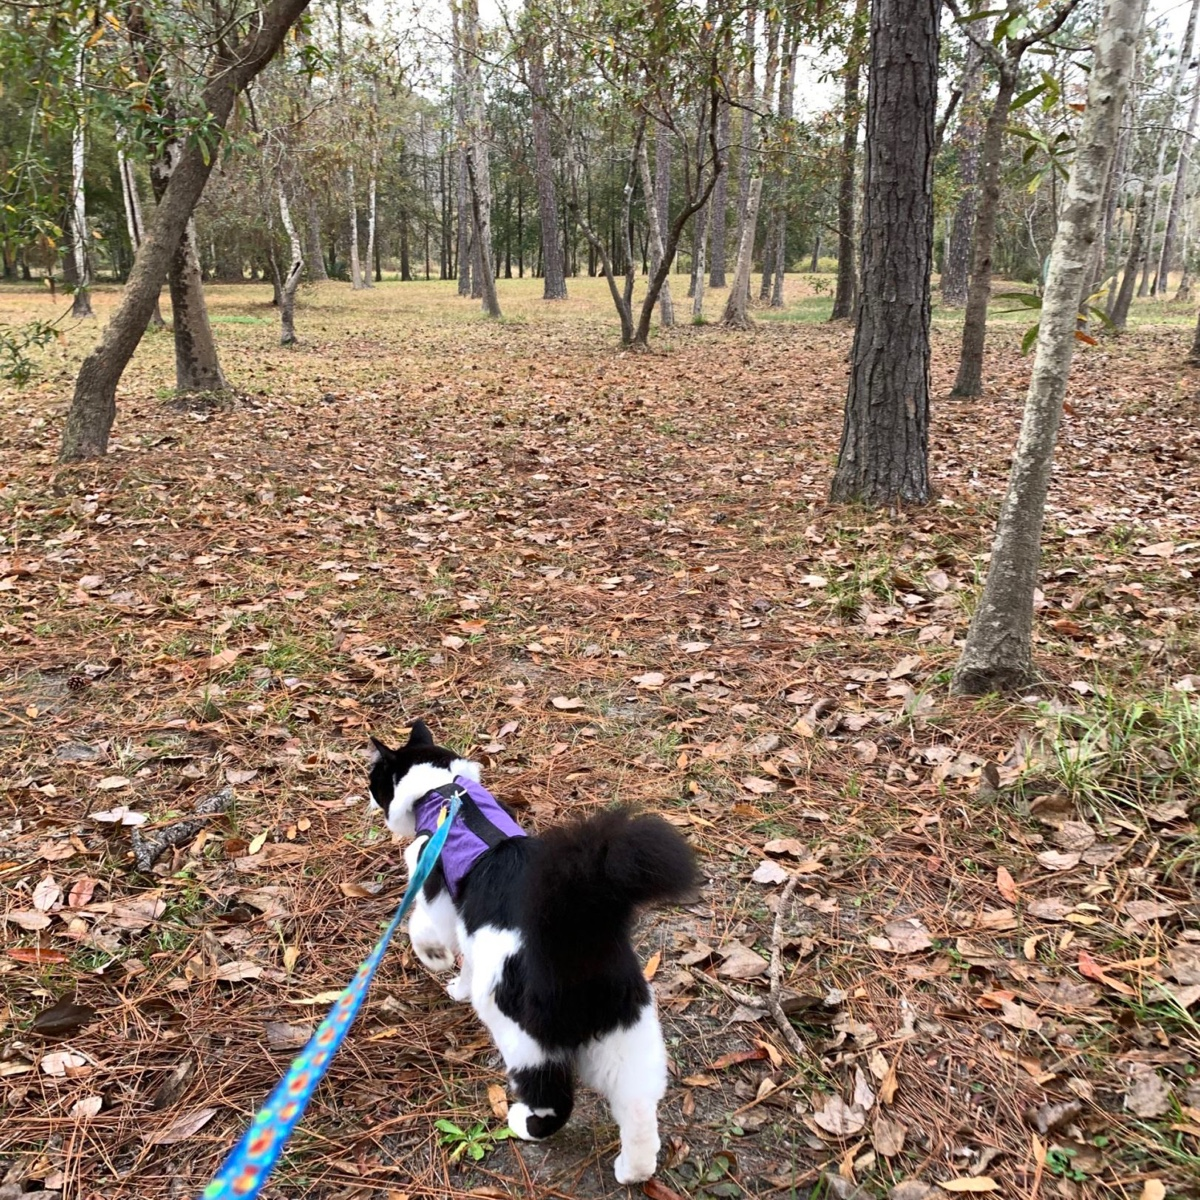 a cat on a leash walking into a forest of trees.